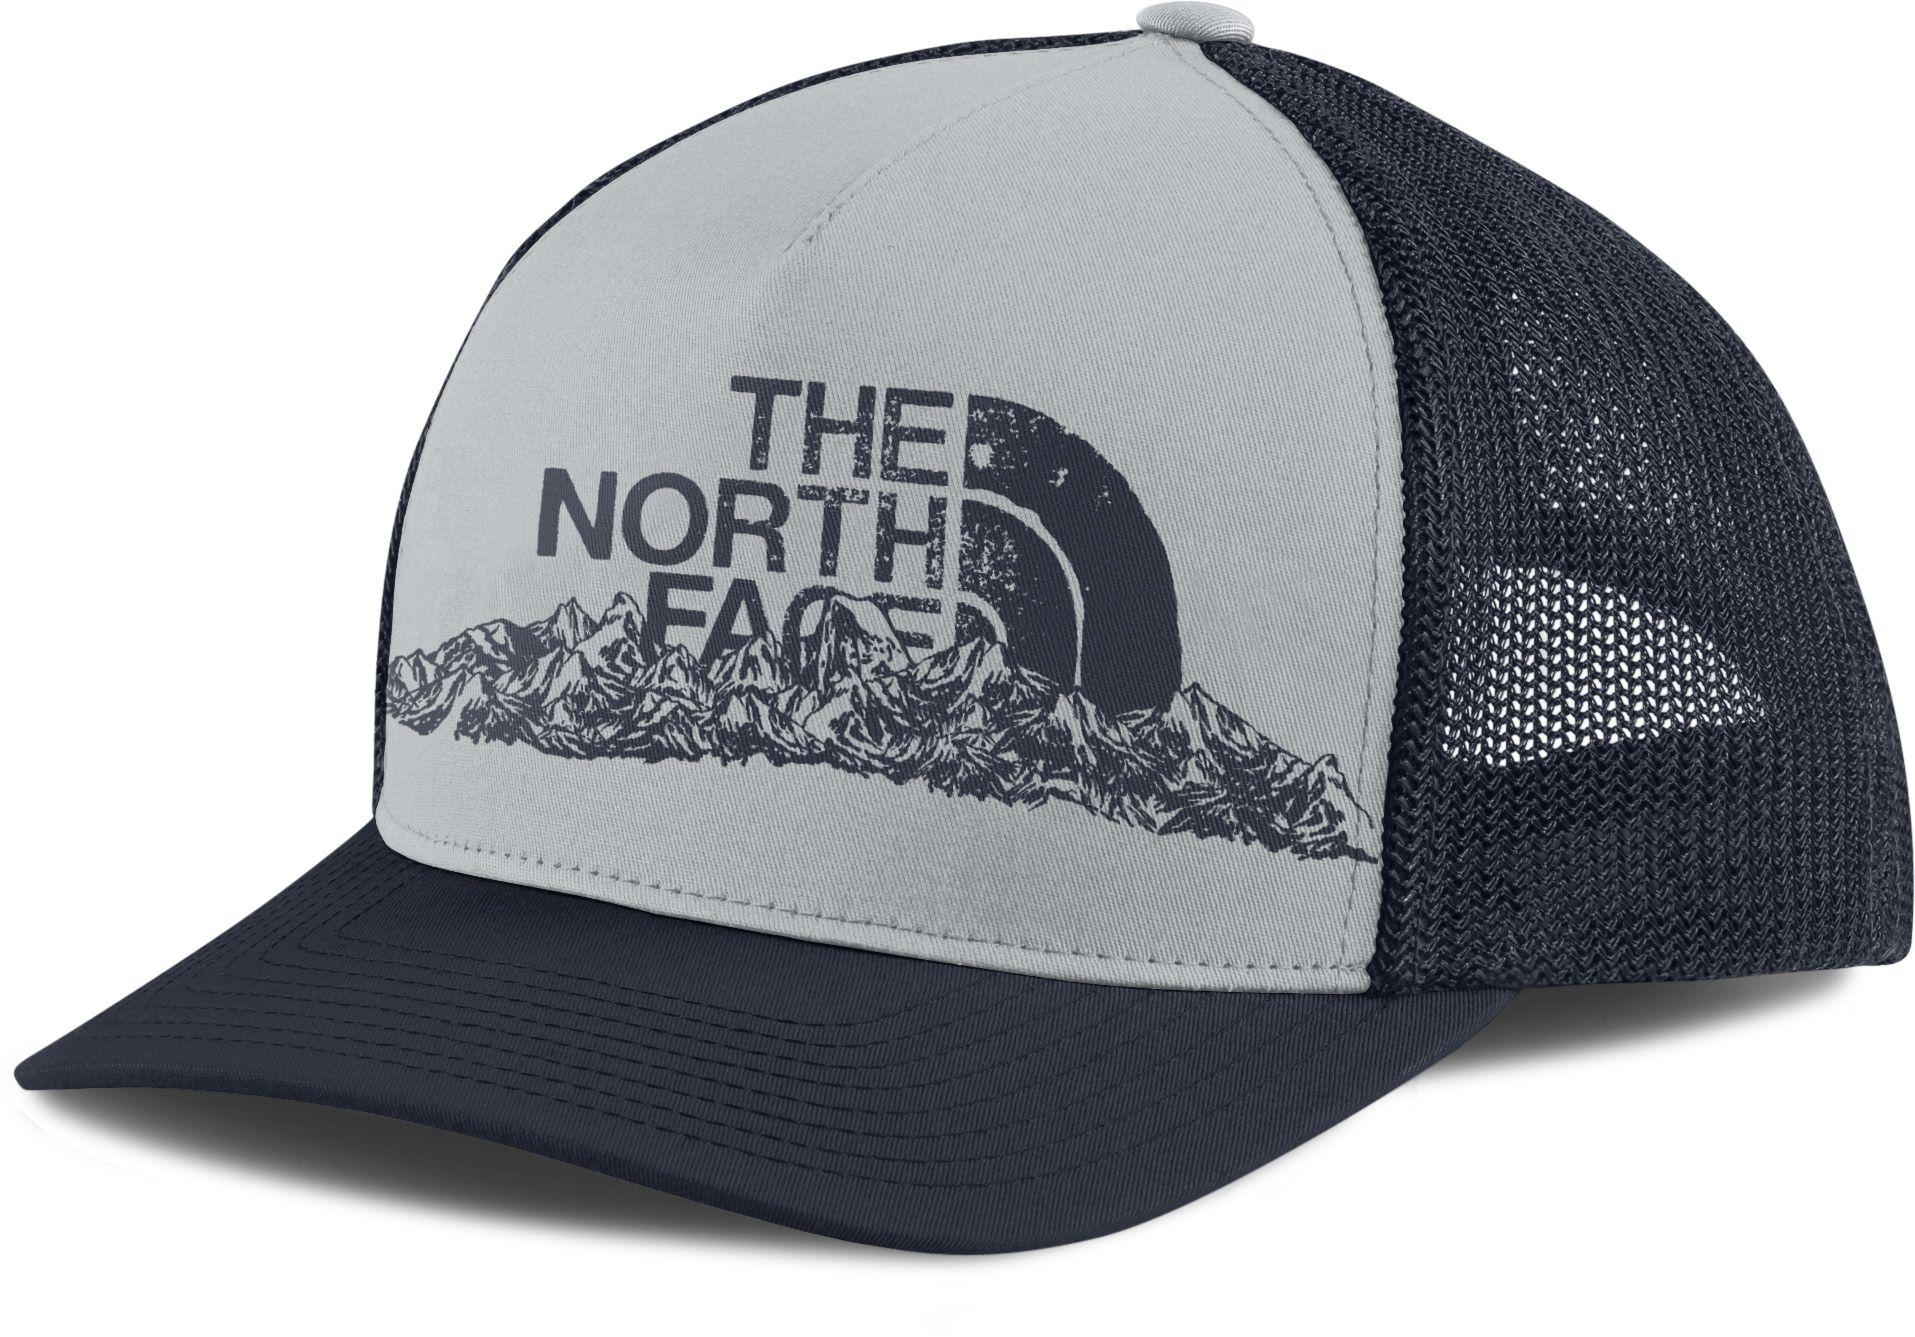 2e675c8cd49e0 Lyst - The North Face Keep It Structured Trucker Hat in Gray for Men